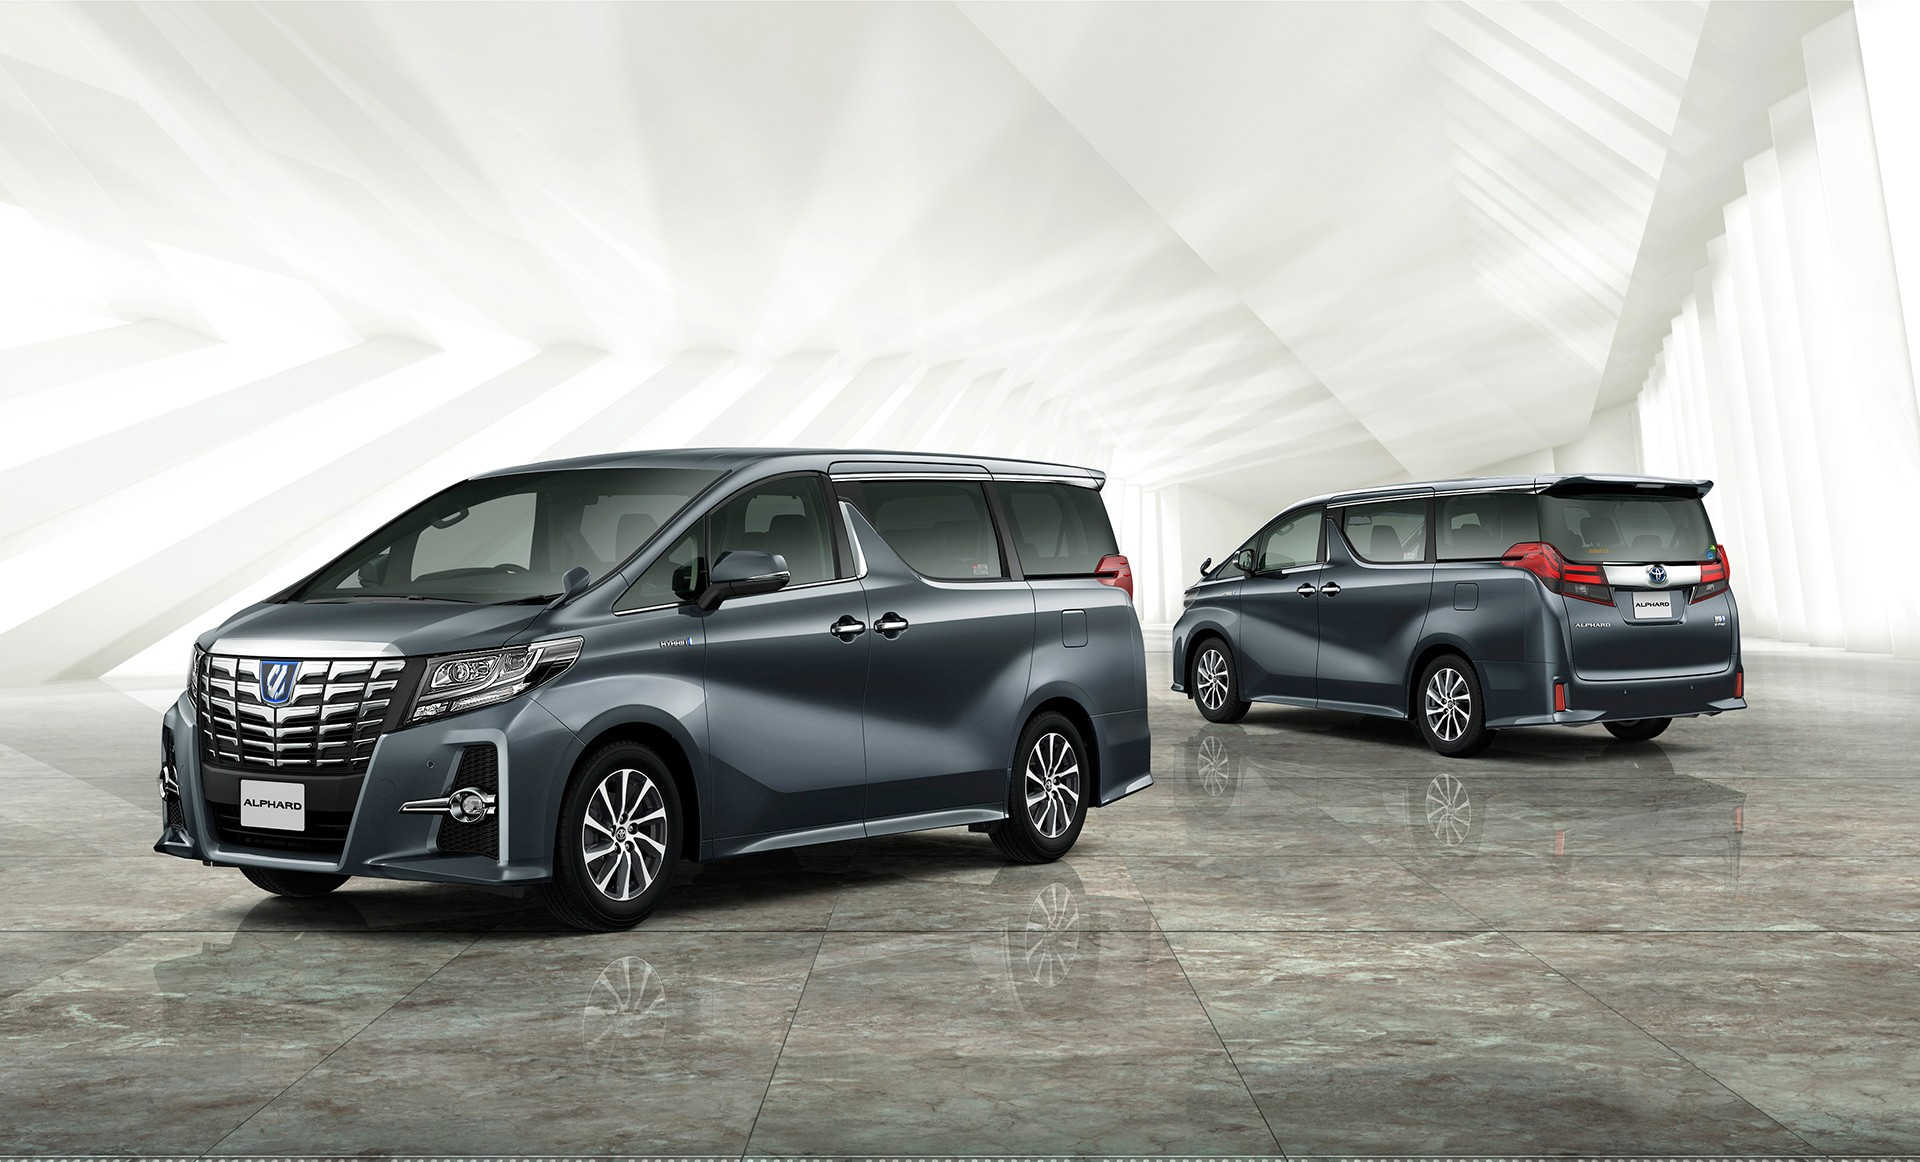 2014 Toyota Alphard Price And Specs Revealed In Malaysia